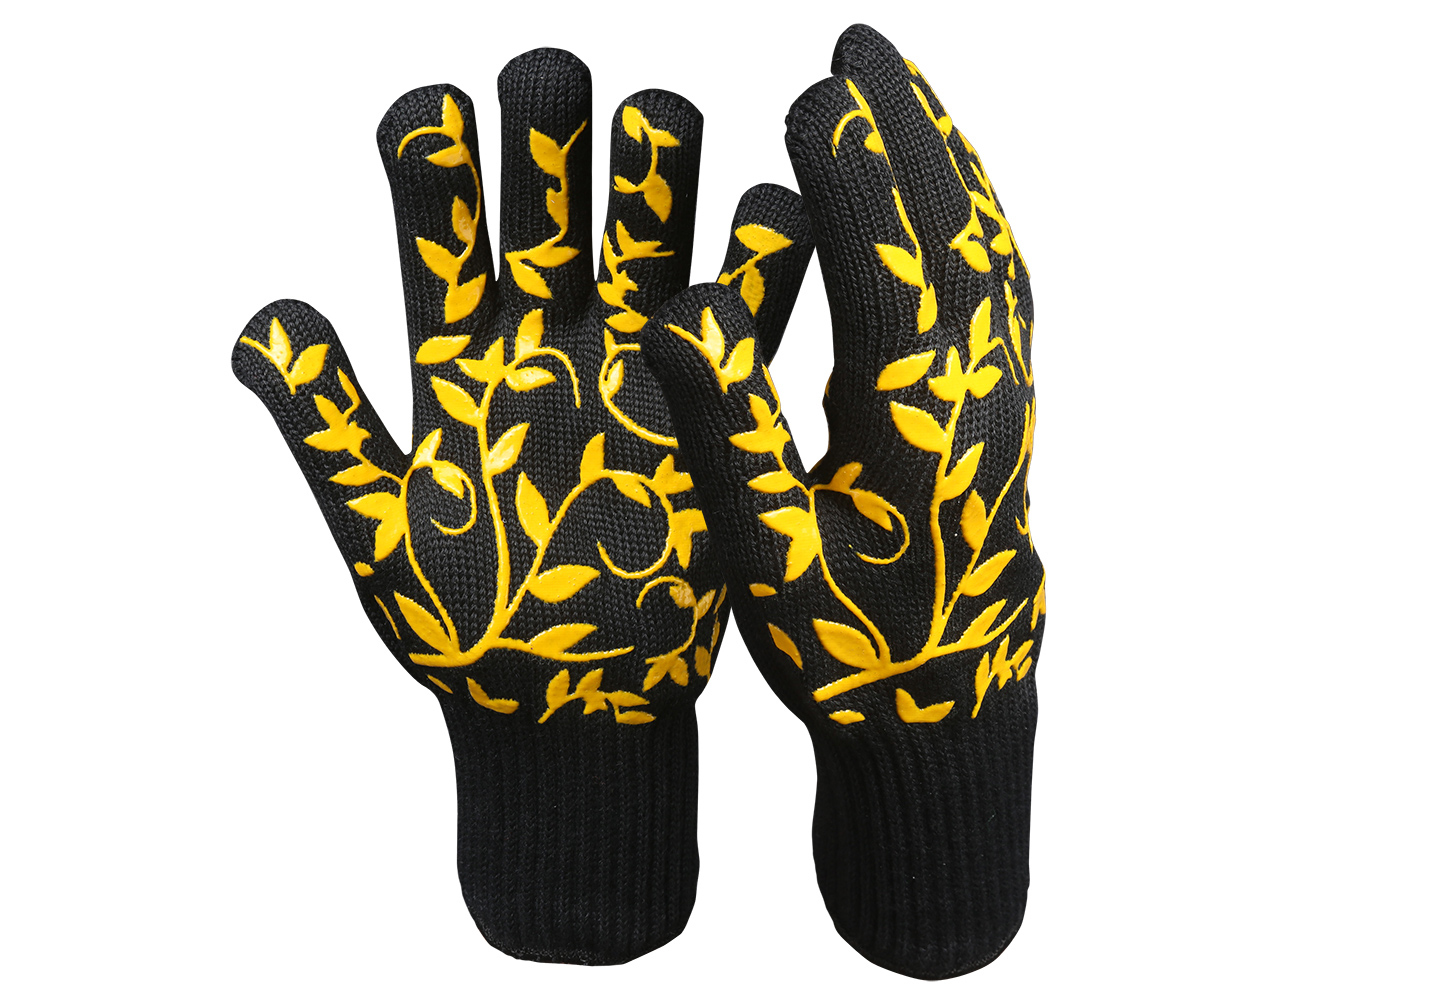 Indoors or Outdoors BBQ Gloves/HRG-003-Y